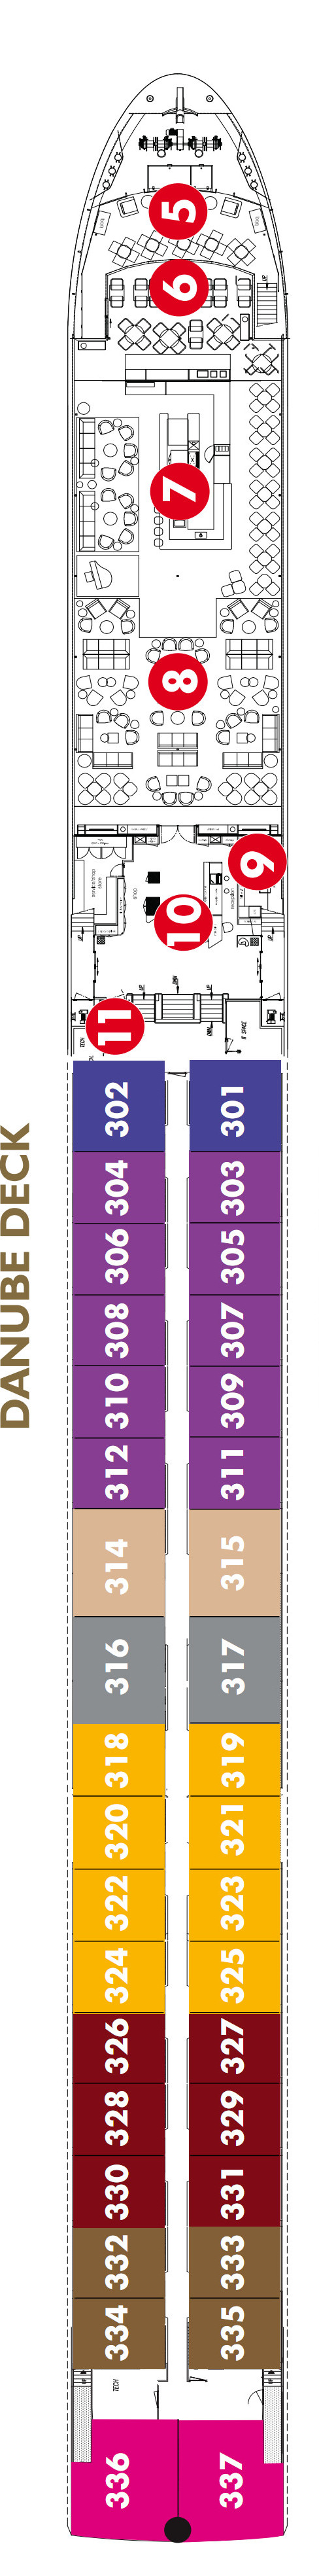 Scenic Diamond Danube Deck layout